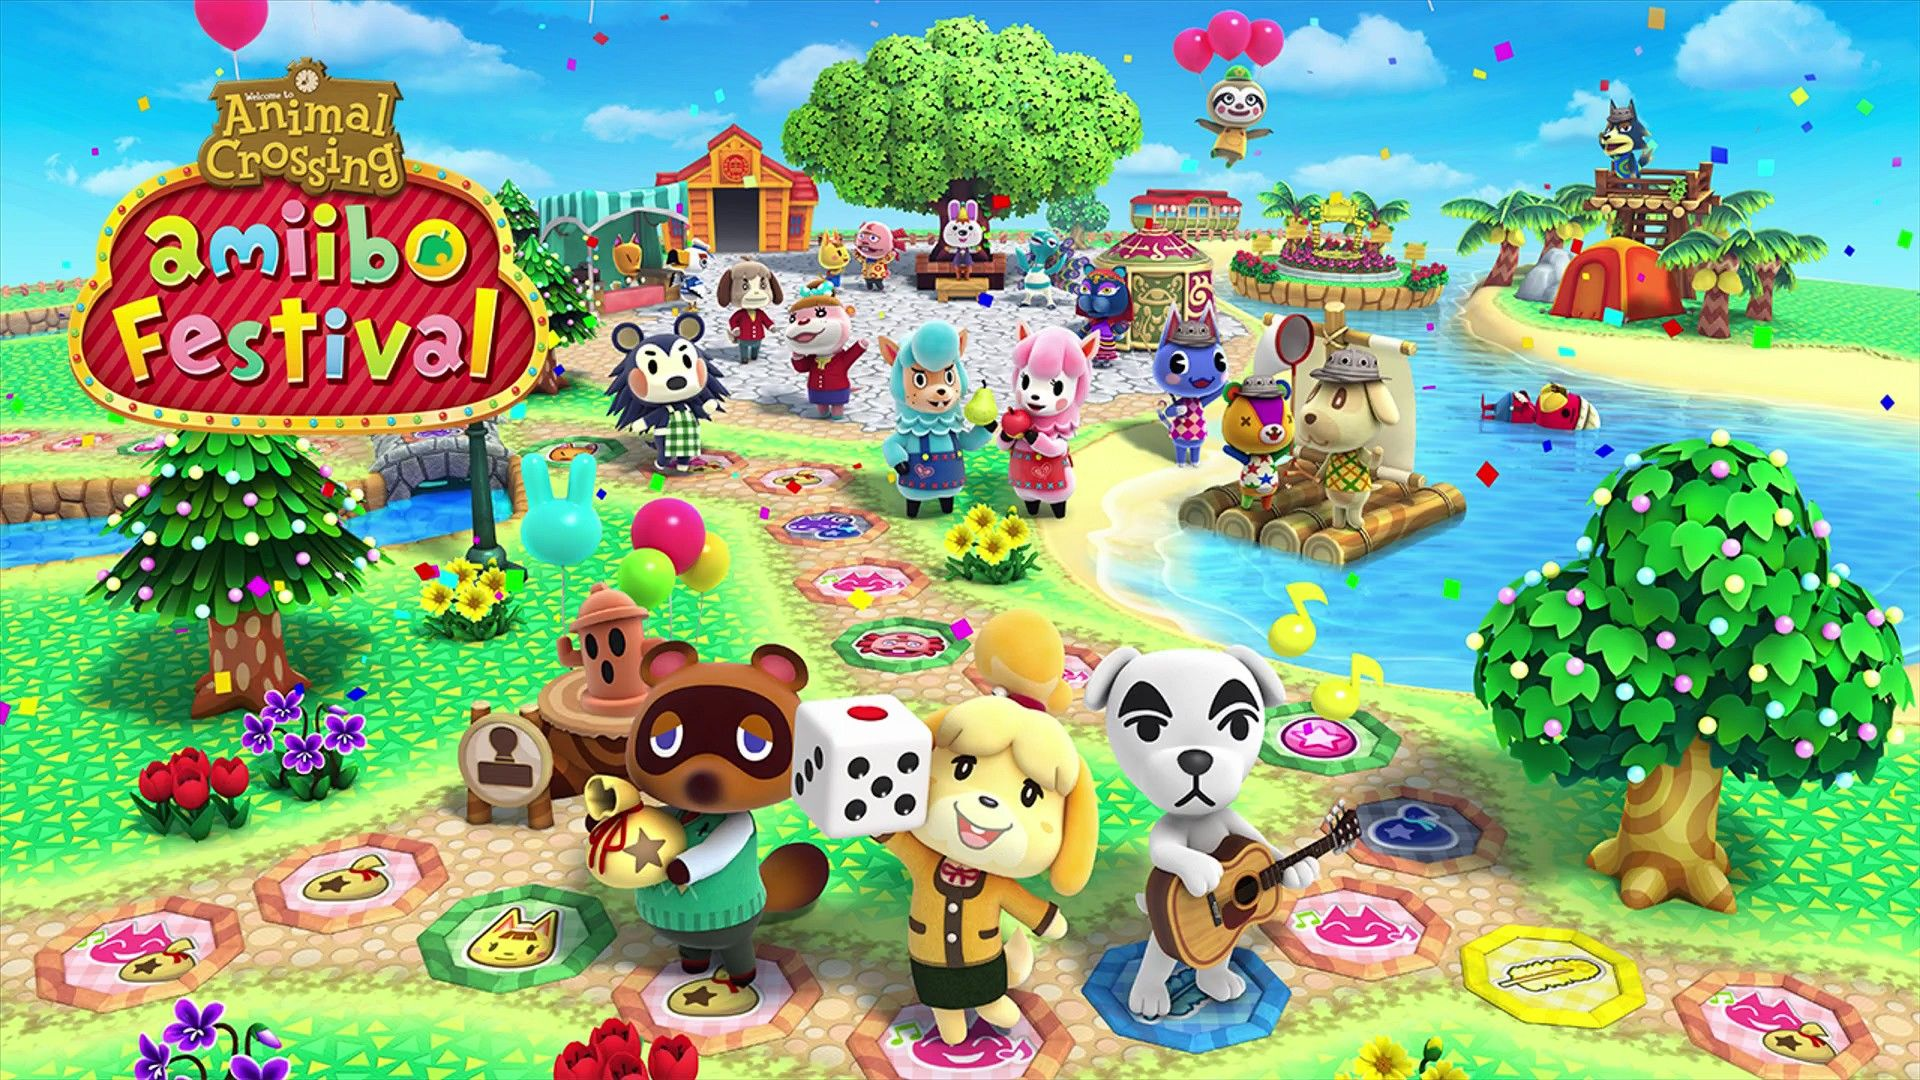 aesthetic animal crossing new horizons desktop wallpaper